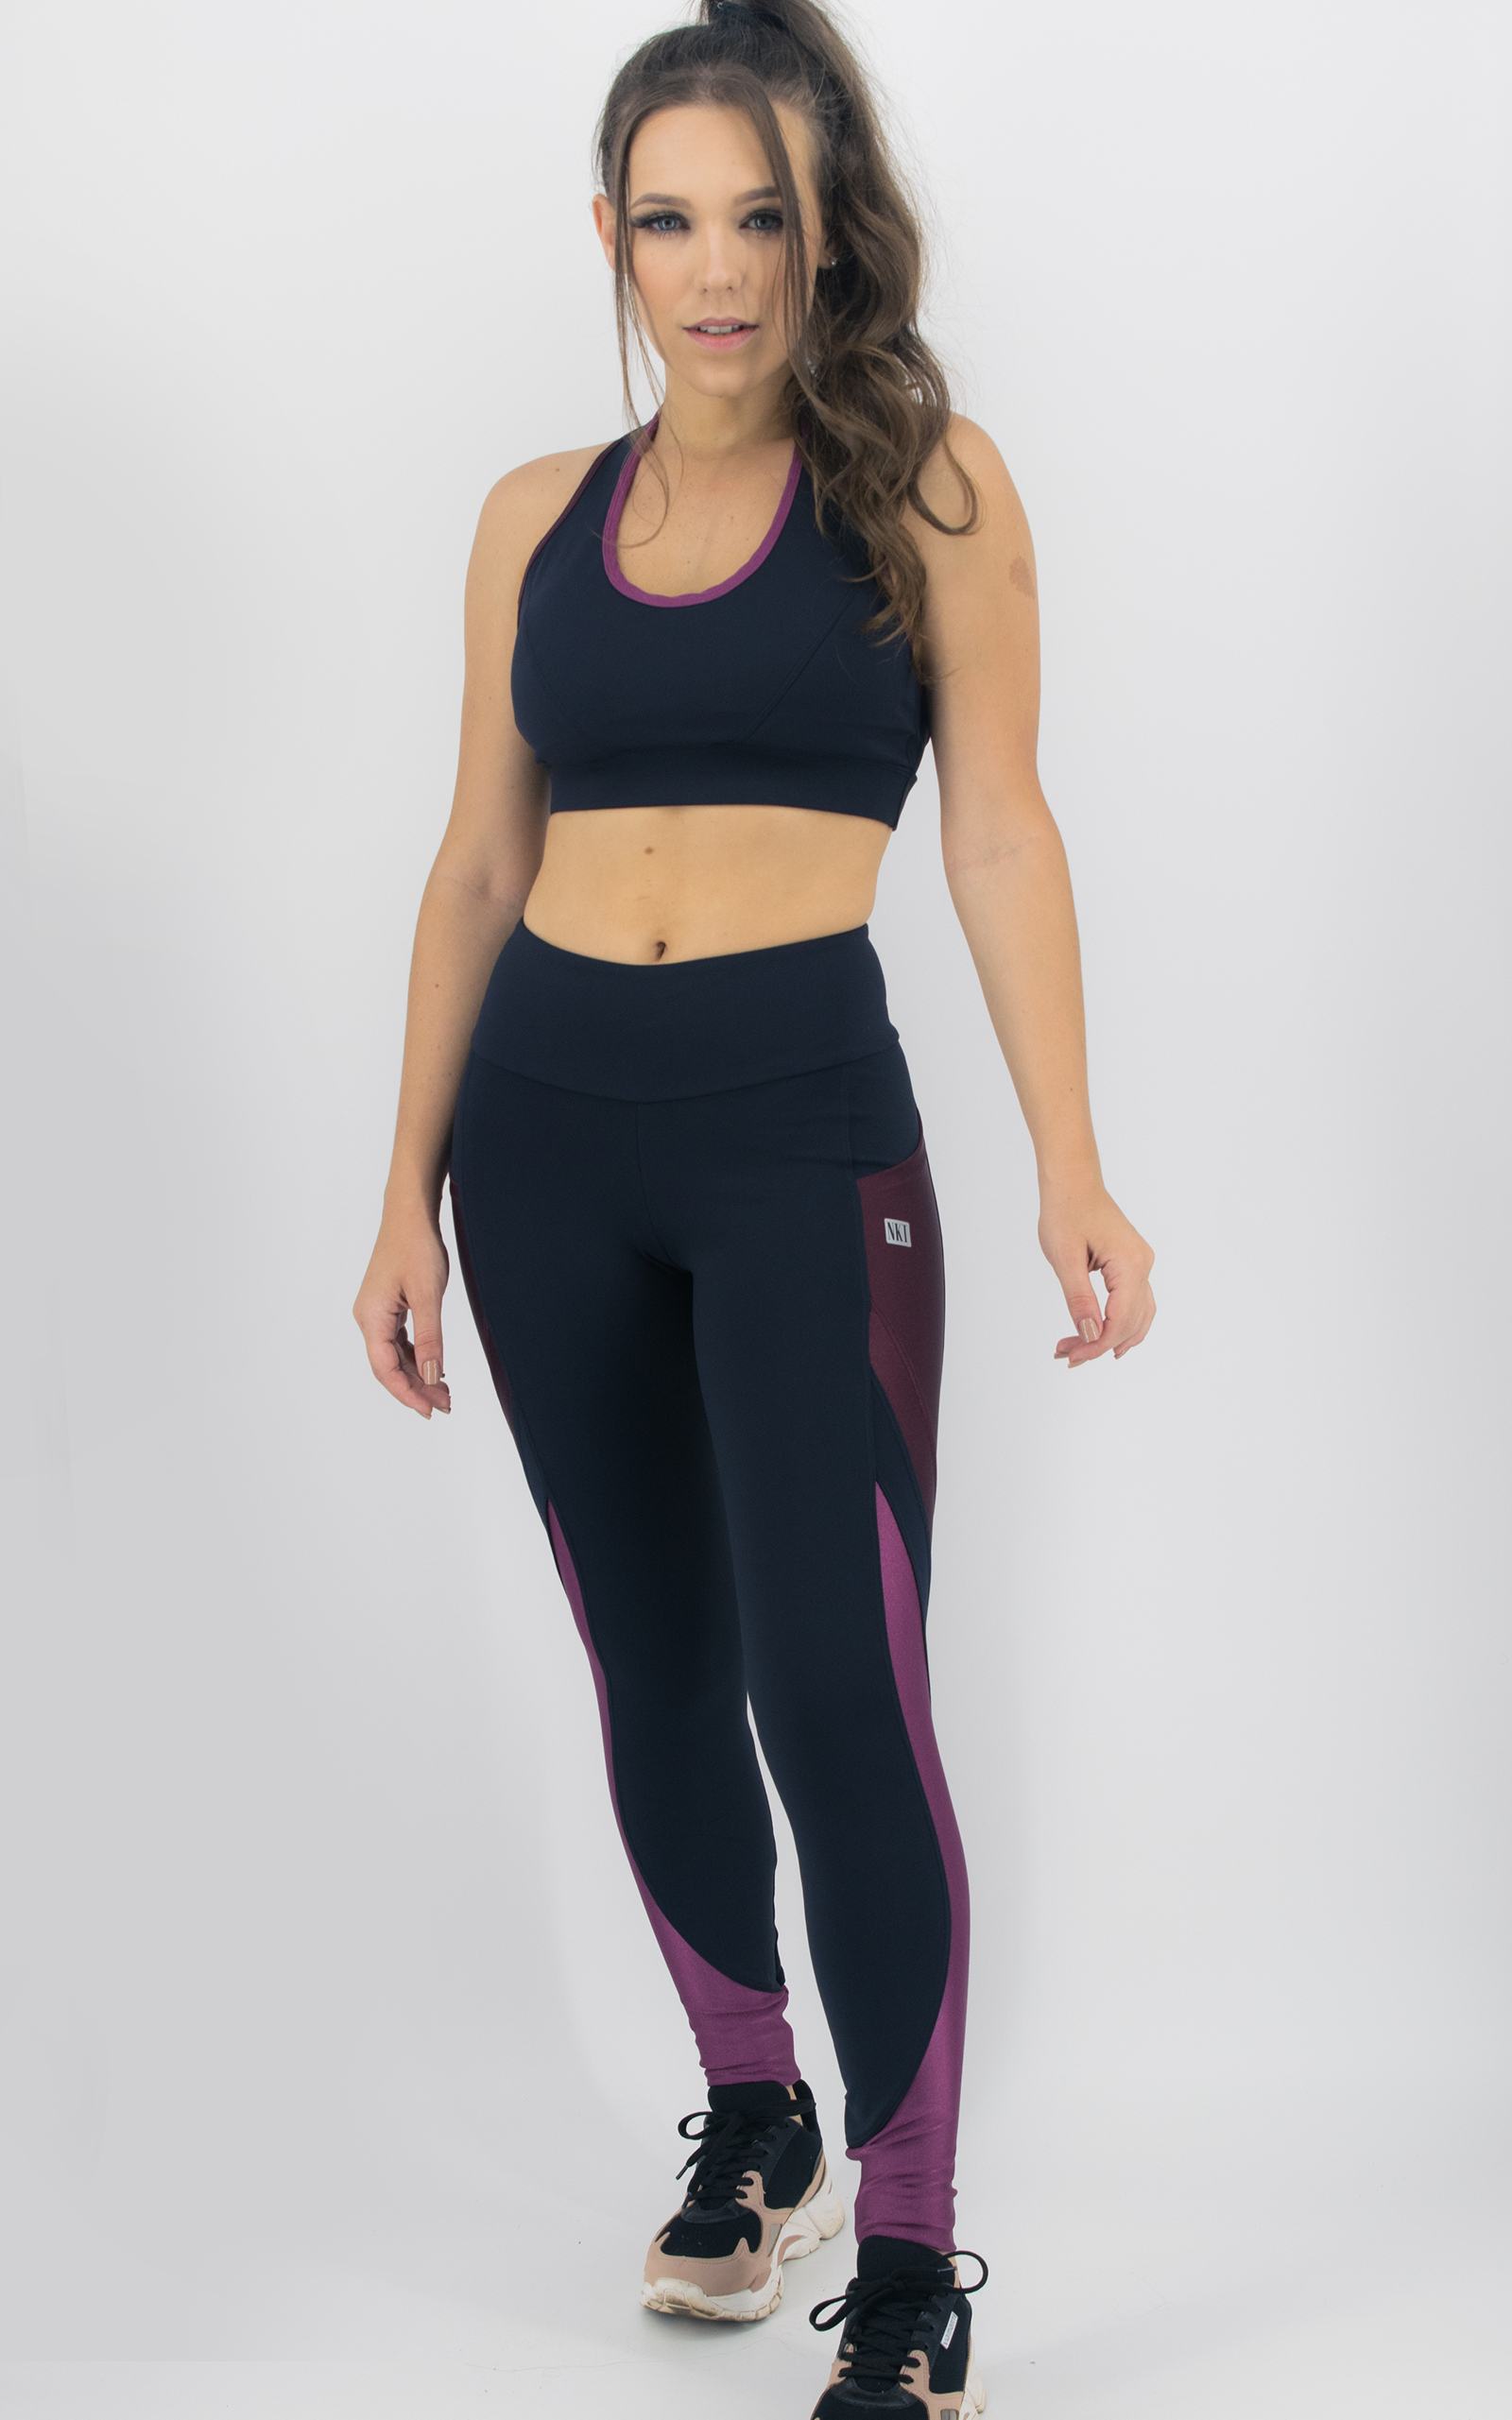 Legging Expression Two Bordo, Coleção Move Your Body - NKT Fitwear Moda Fitness